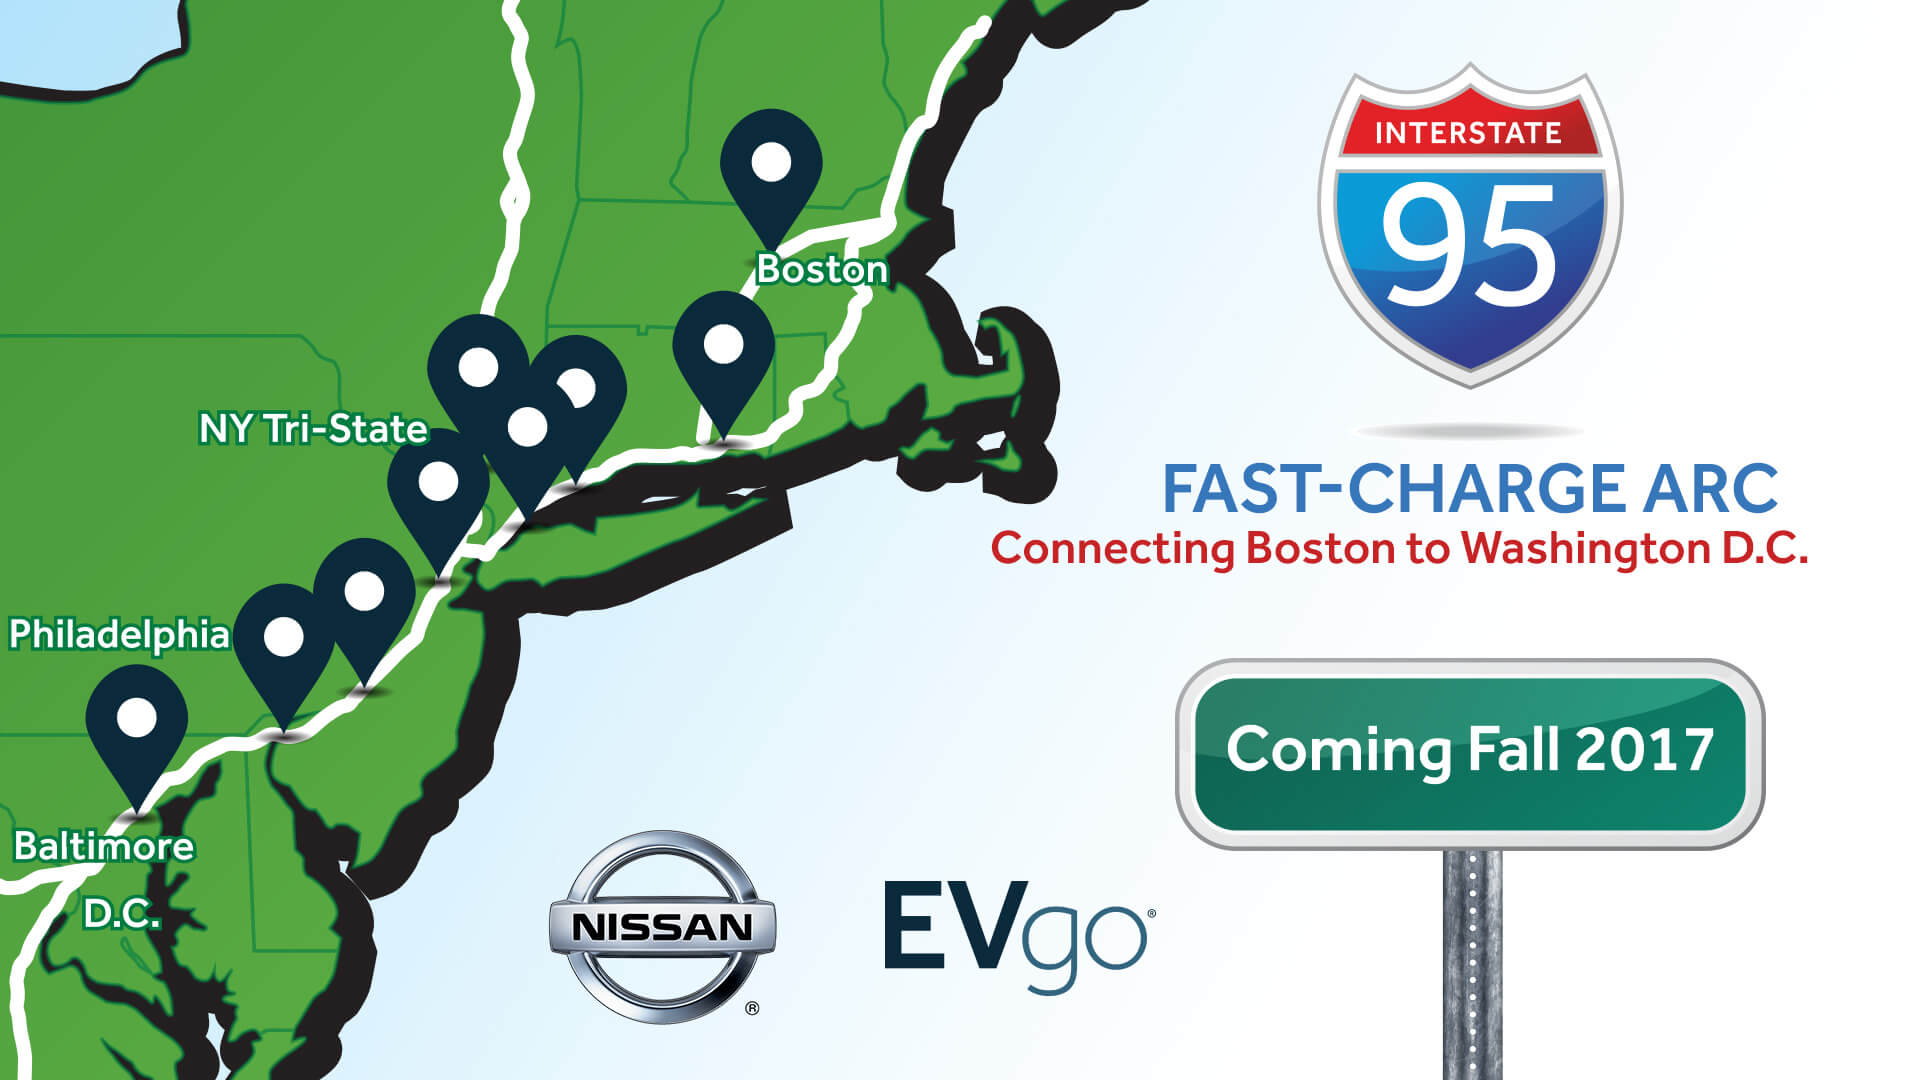 Nissan-EVgo-I95-ARC Nissan, EVgo Inter-City EV Charging Network to Span 500 Miles